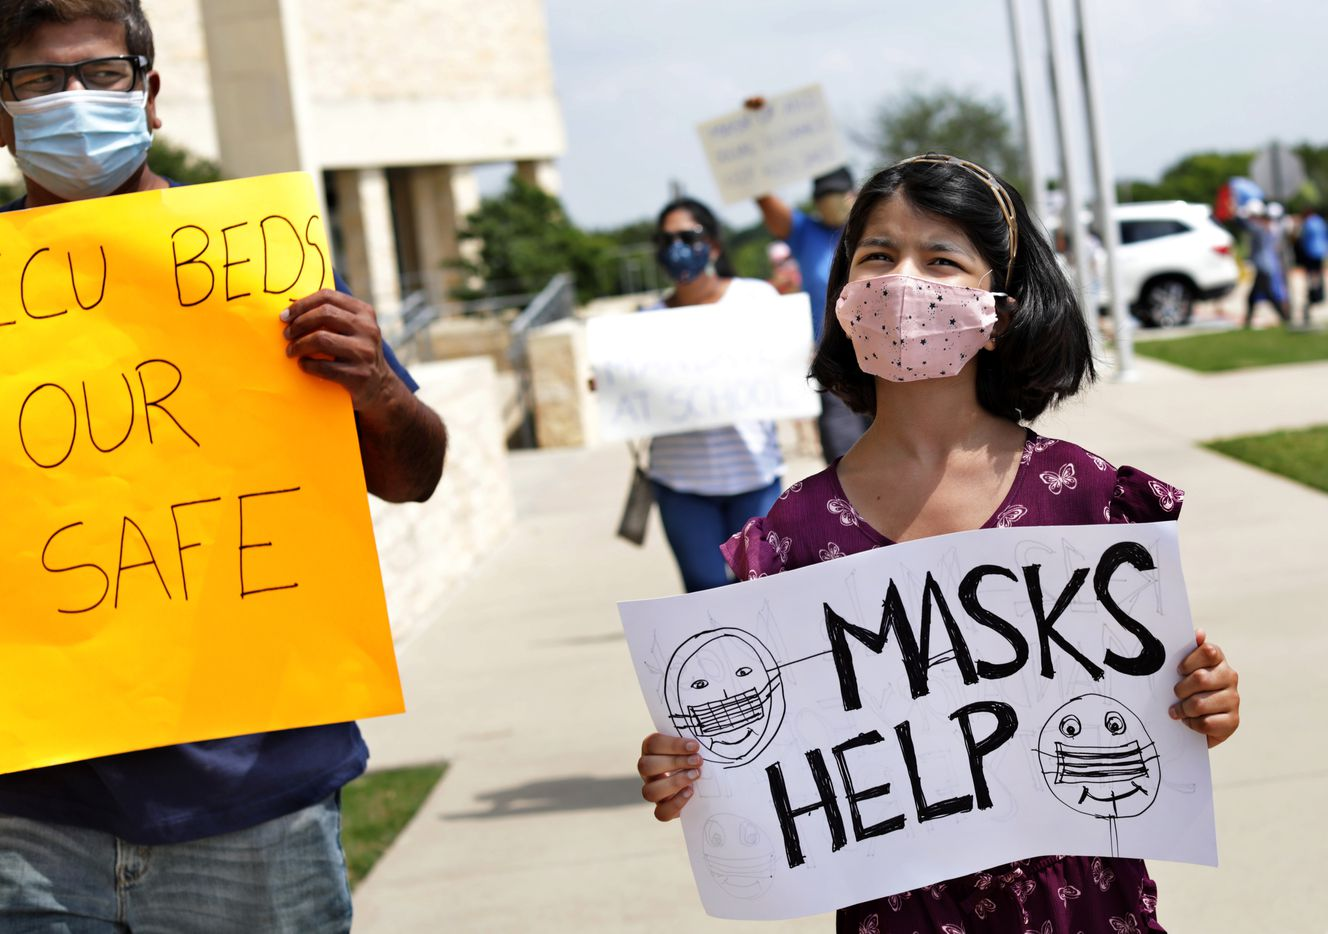 Devang Shah, left, and 8-year-old Khushi Shah join other community members seeking better COVID-19 protections during a protest at the Frisco ISD Administration Building in Frisco, TX, on Aug. 26, 2021.